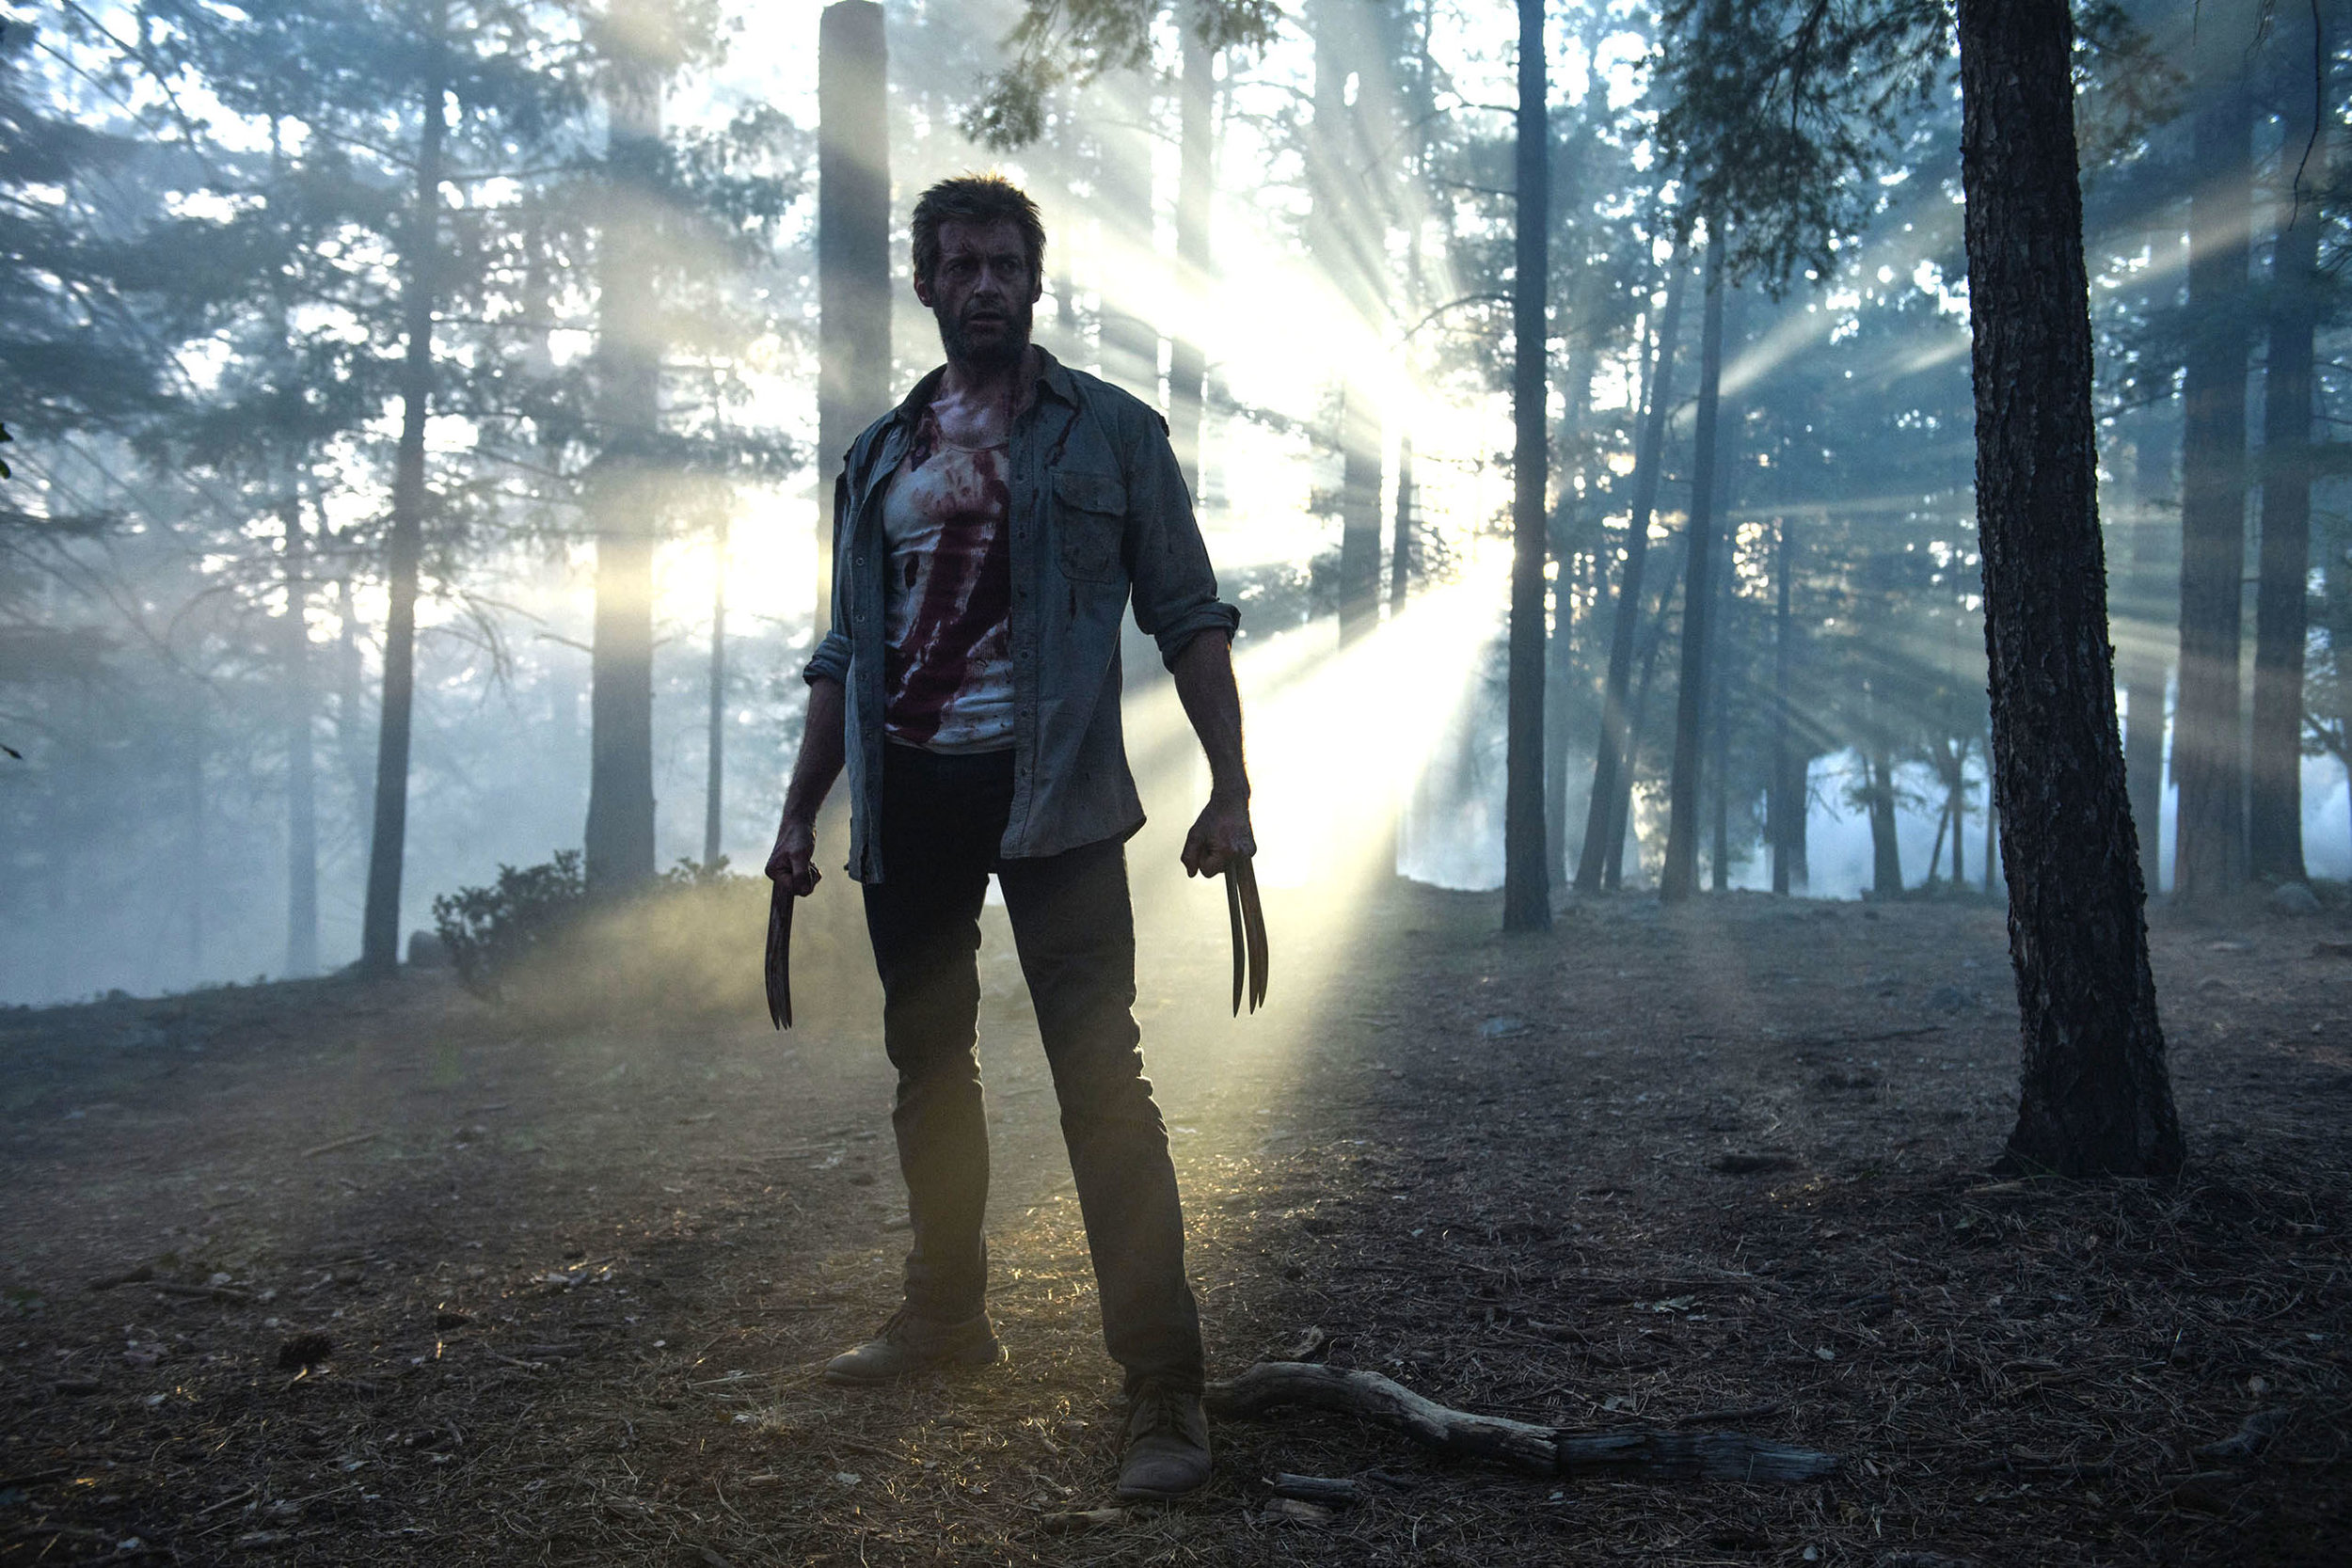 logan, mangold, screenplay, wolverine, jackman